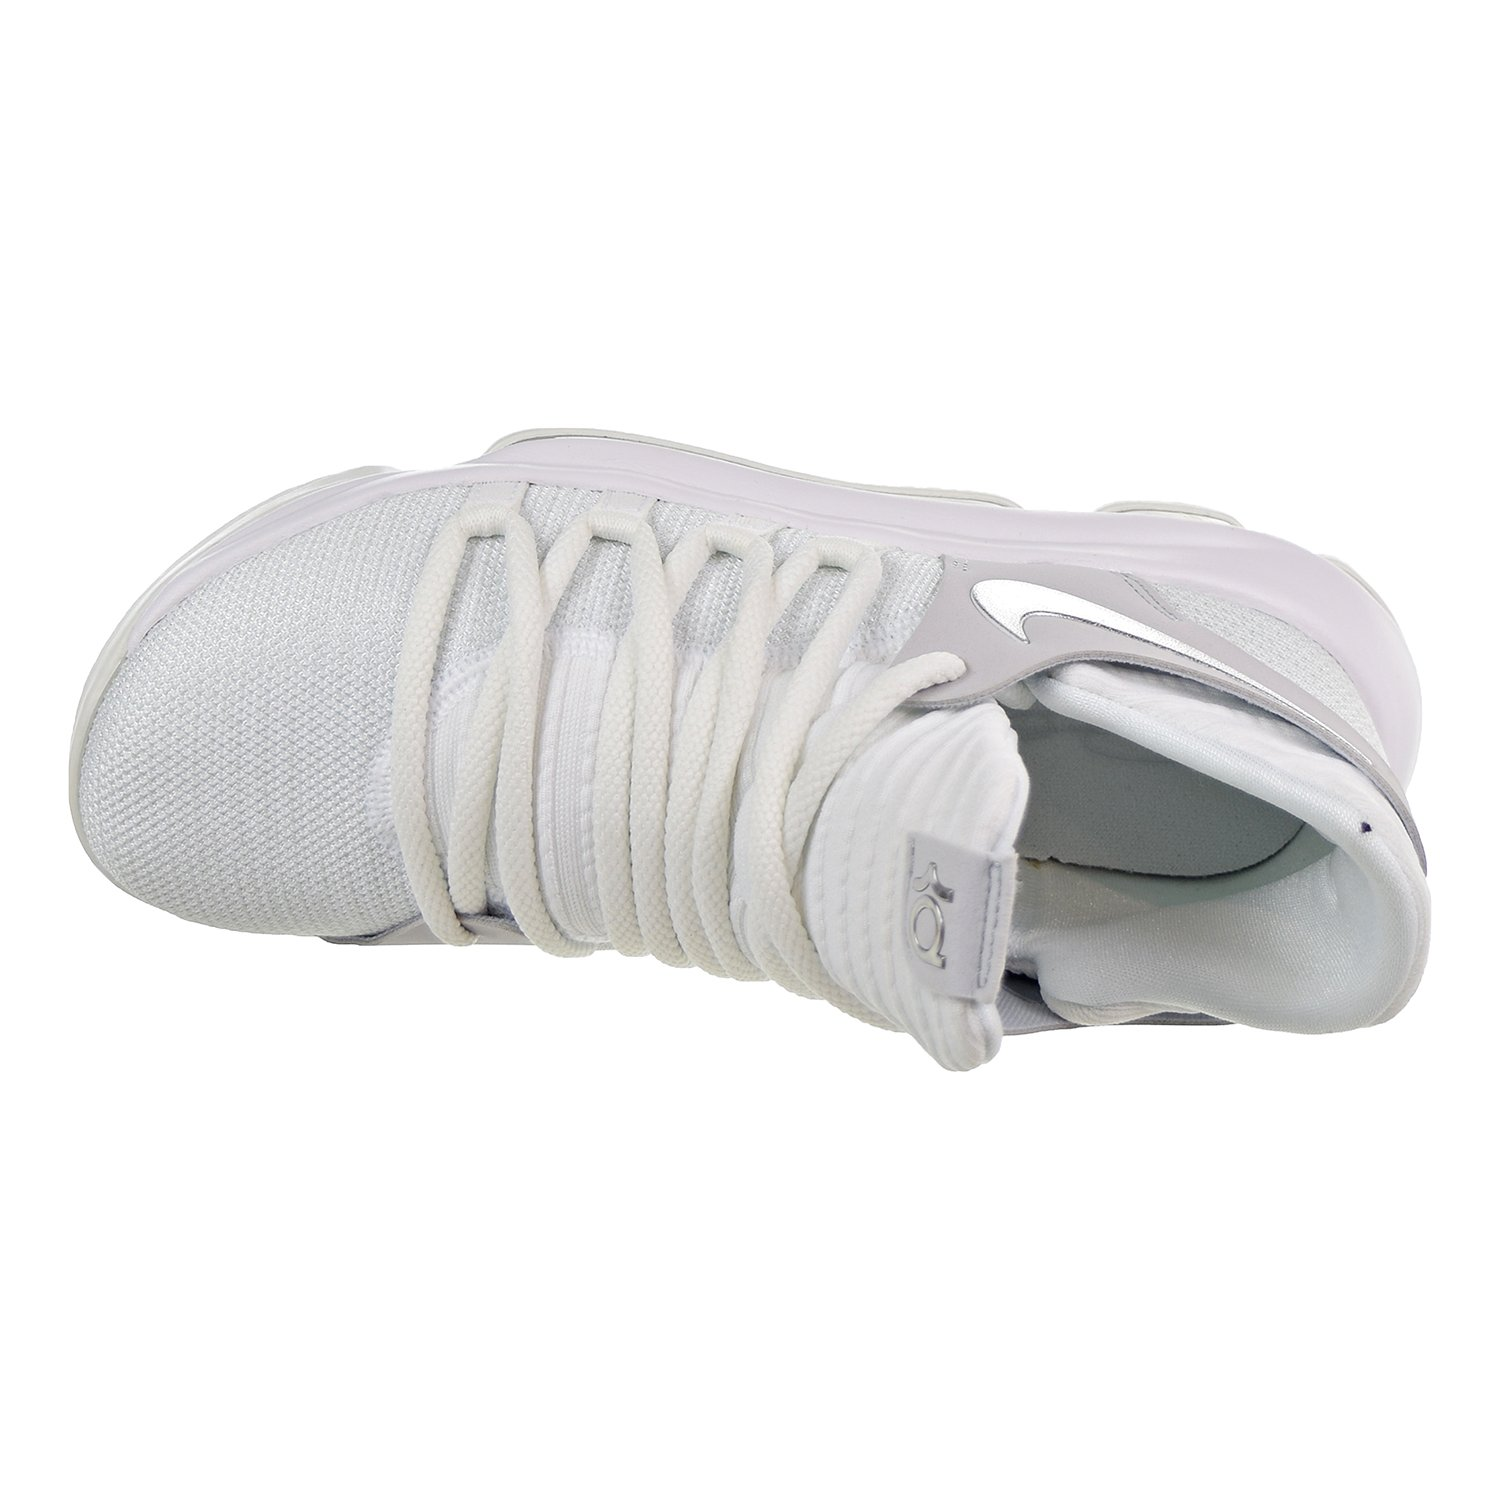 5y Nike Zoom KD10 GS Youth Basketball Sneakers White//Chrome-Pure Platinum